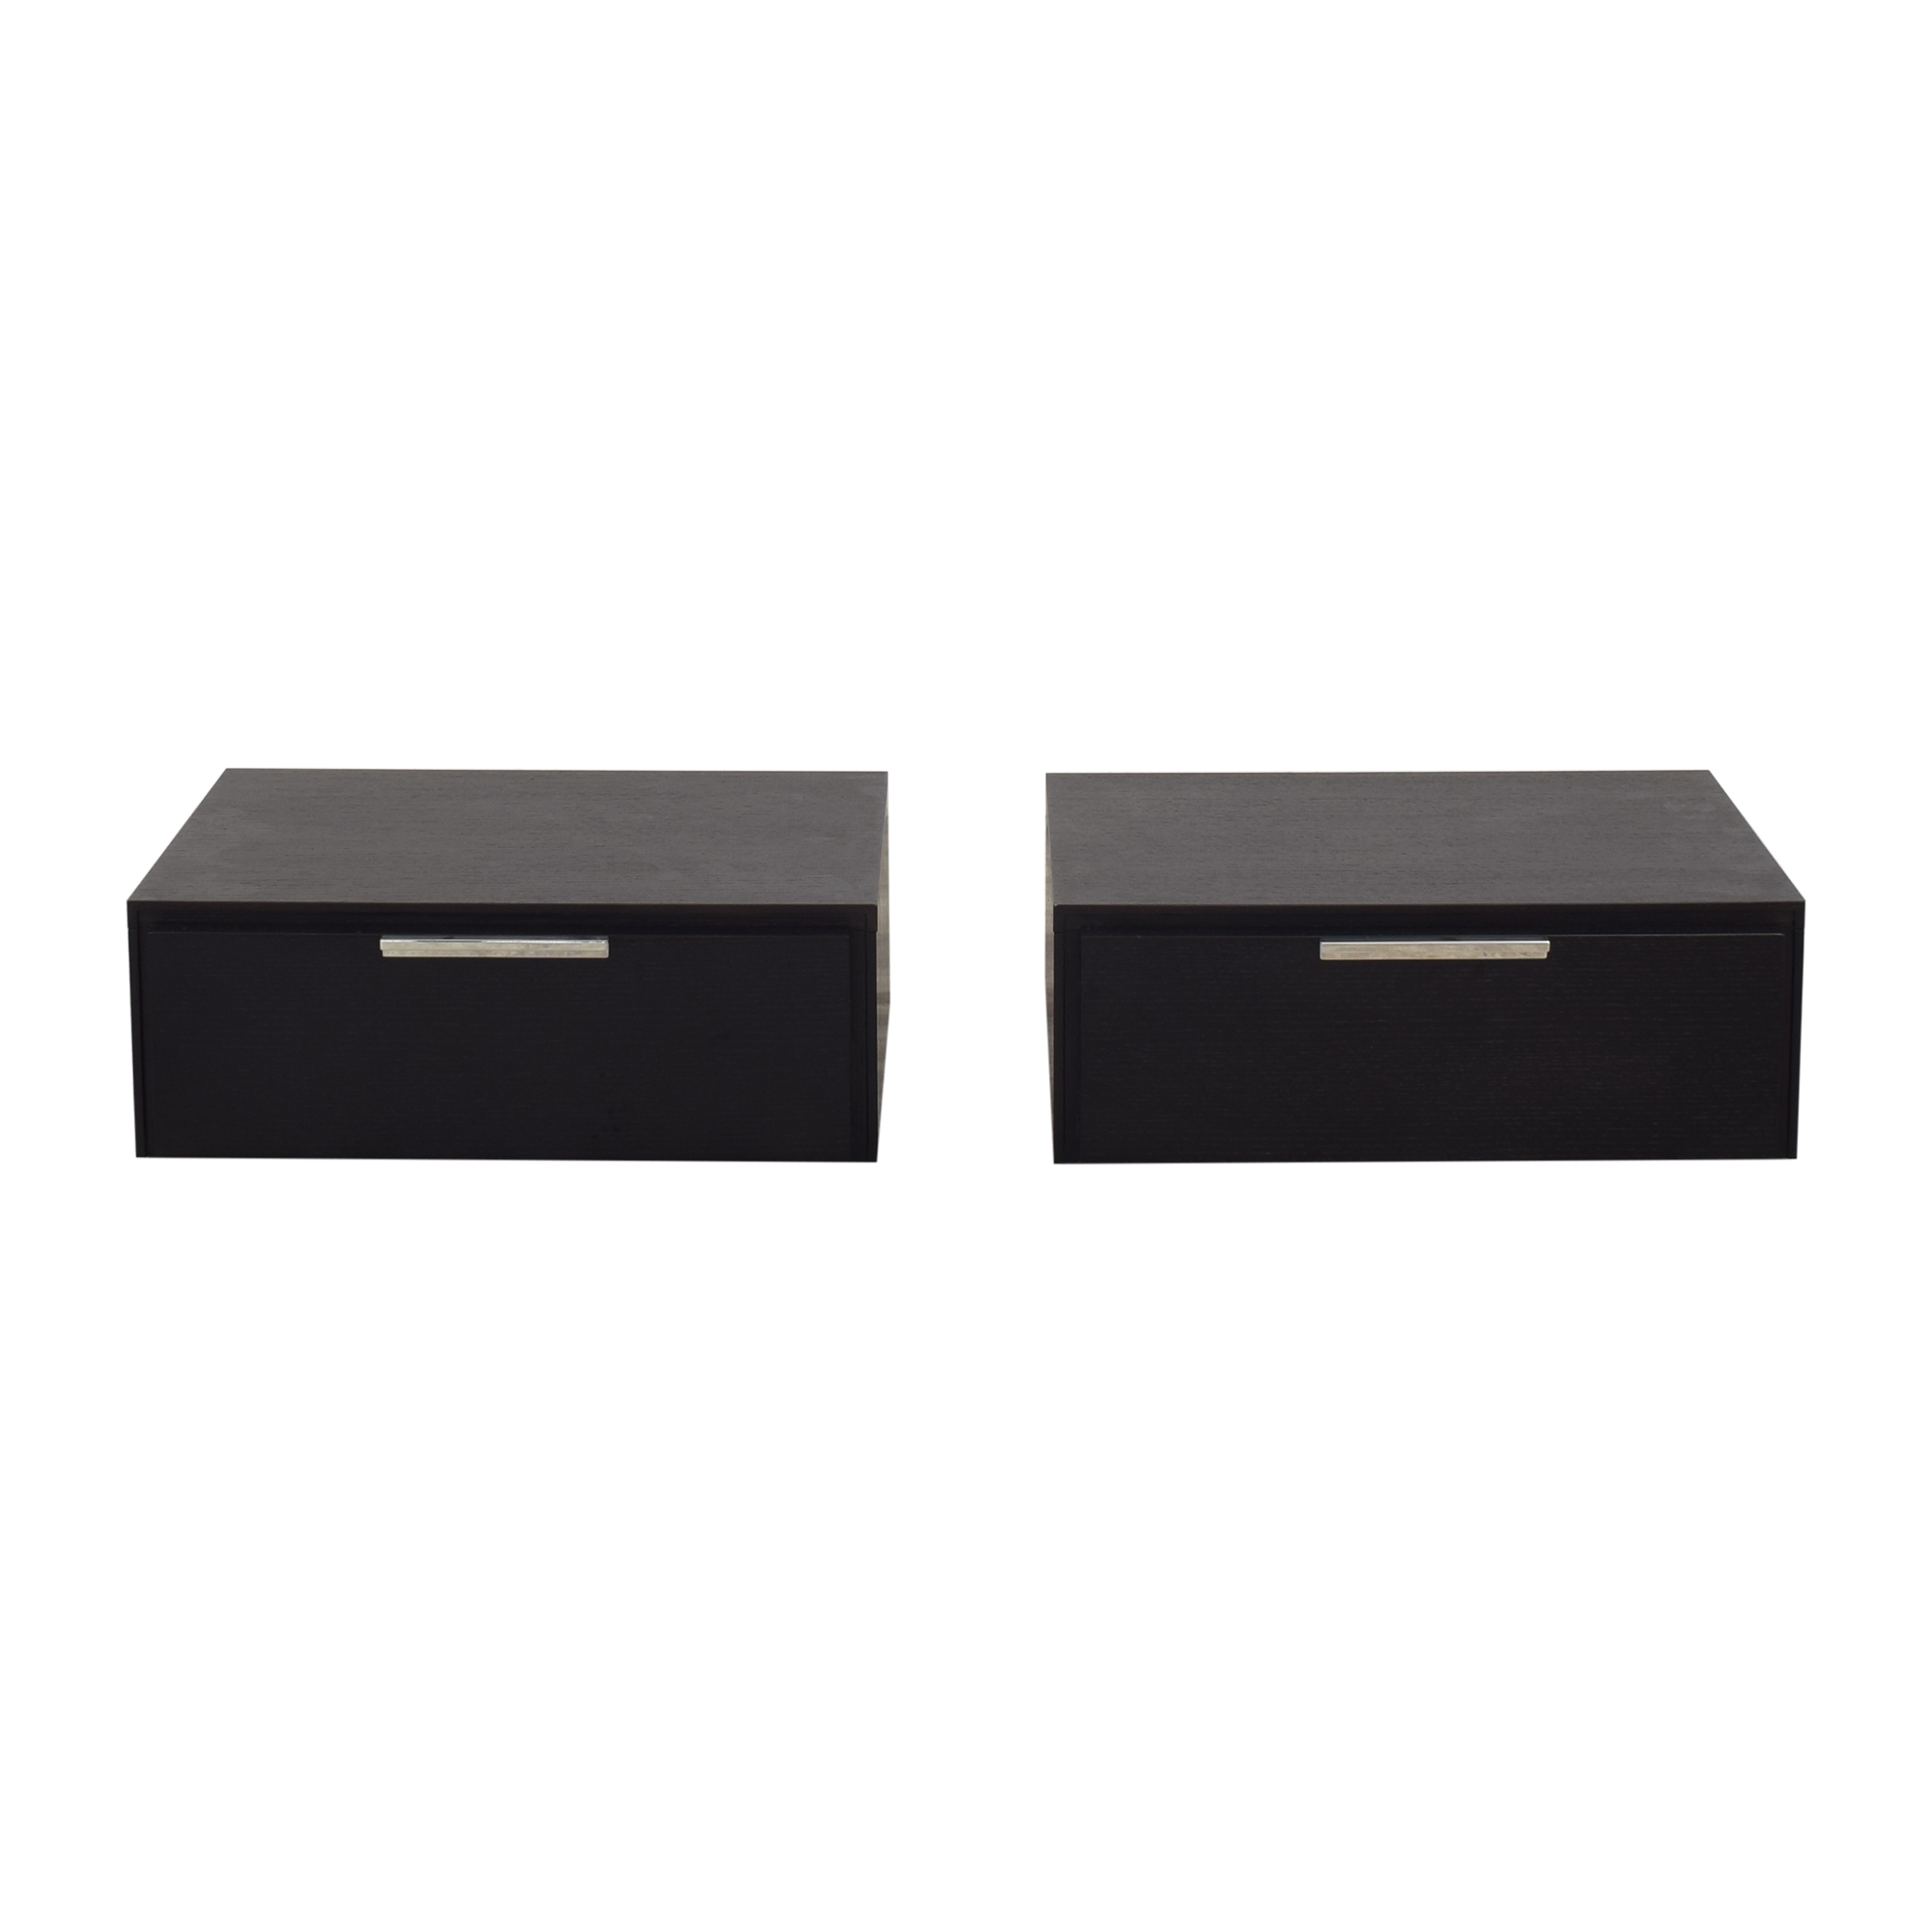 Modloft Thomspon Two-Drawer Nightstands sale